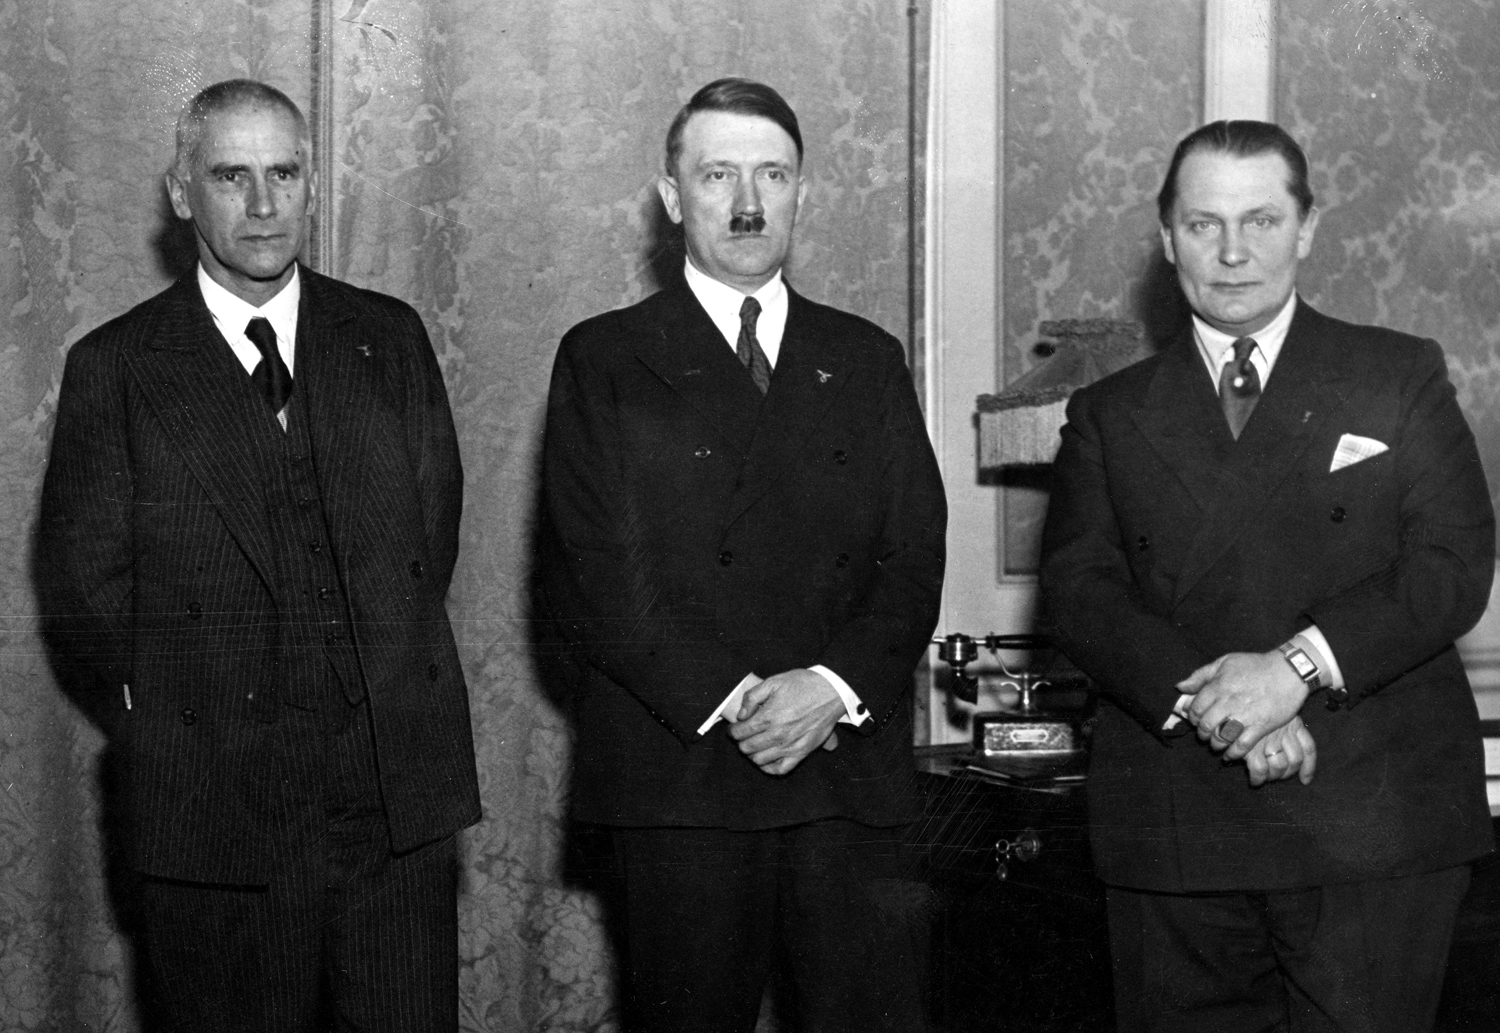 Wilhelm Frick, Hermann Göring, and Hitler on the day he was named Chancellor of Germany